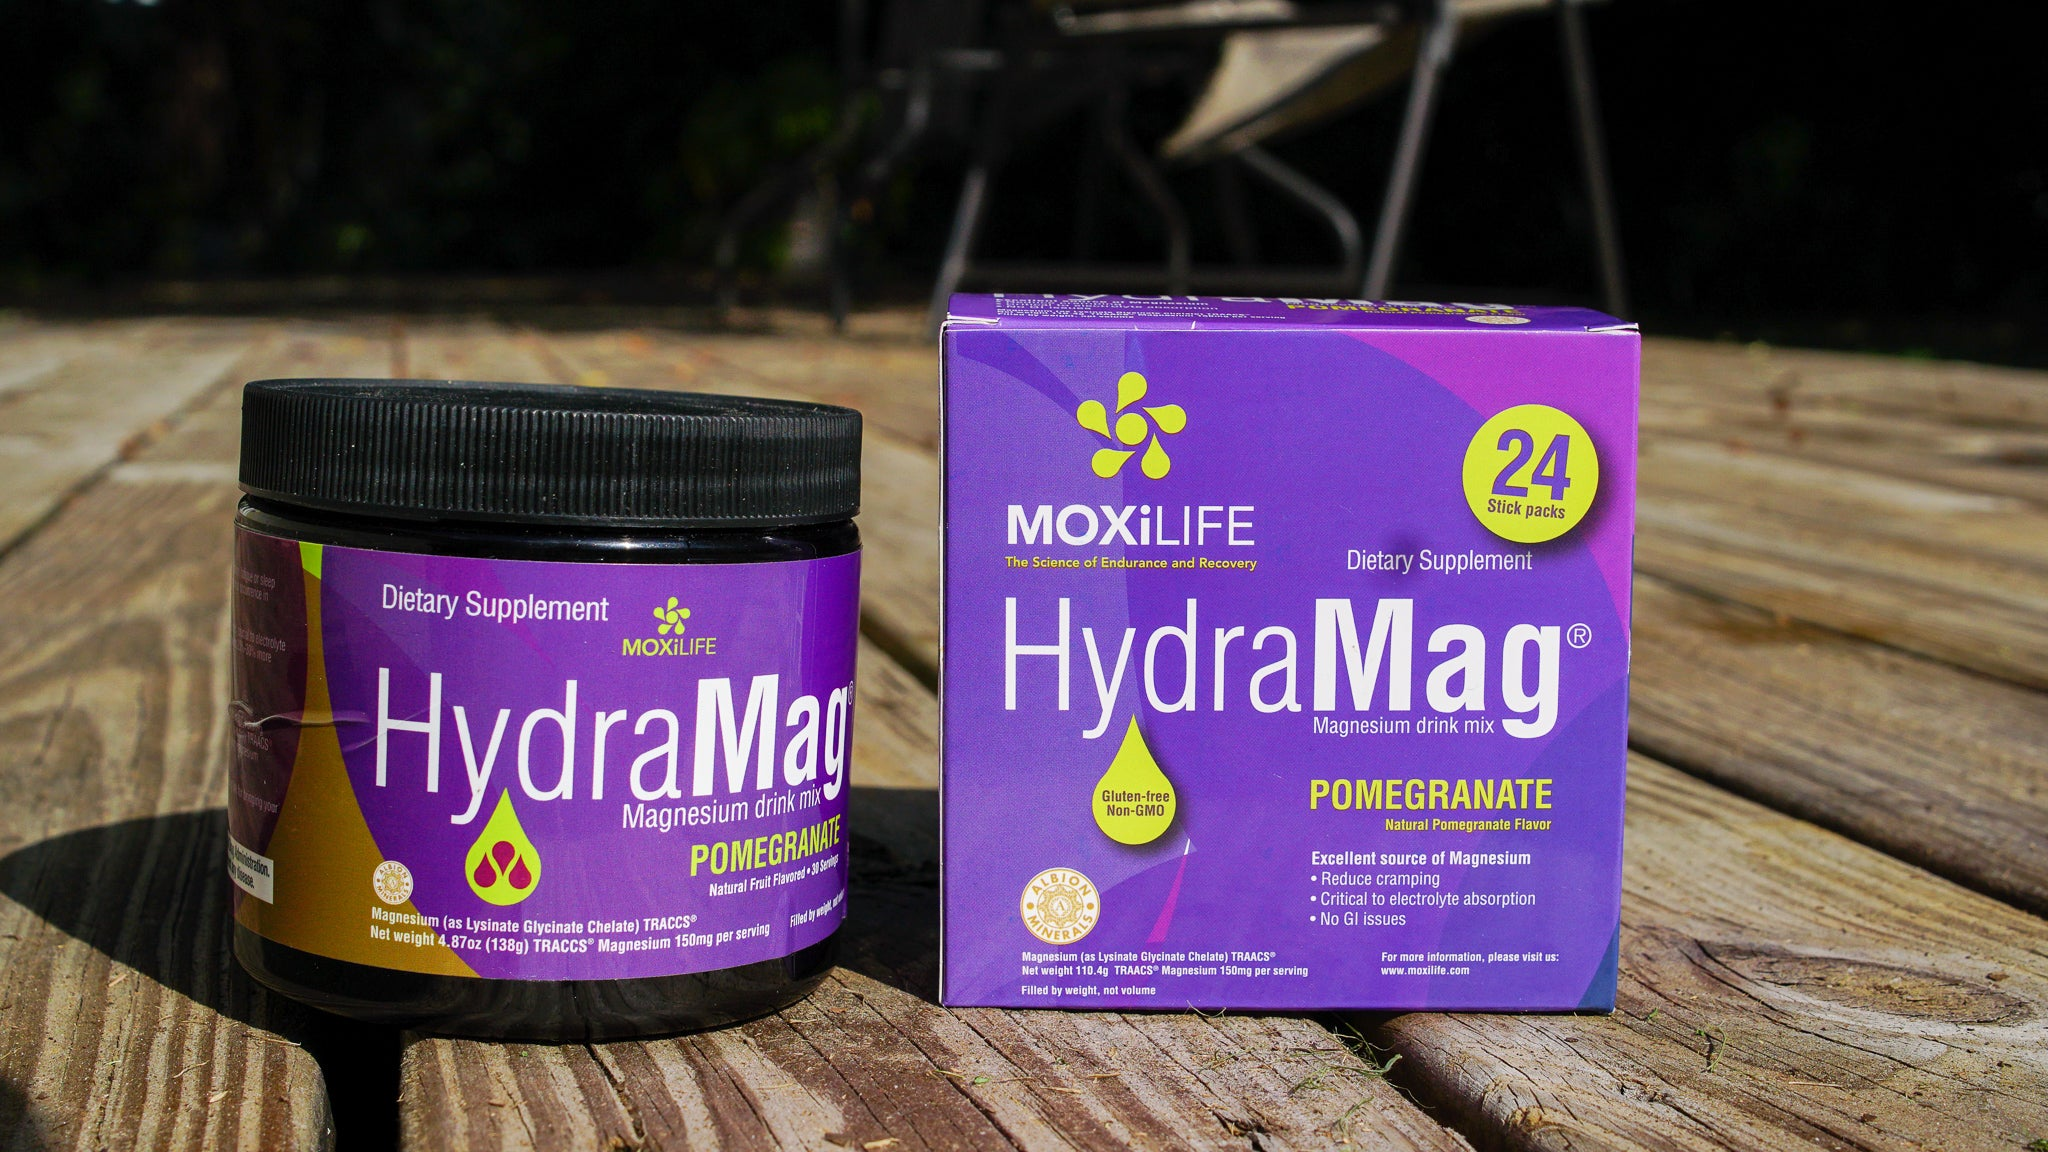 HydraMag 30 serving tub and a 24 serving box of stickpacks sitting on wooden deck outdoors